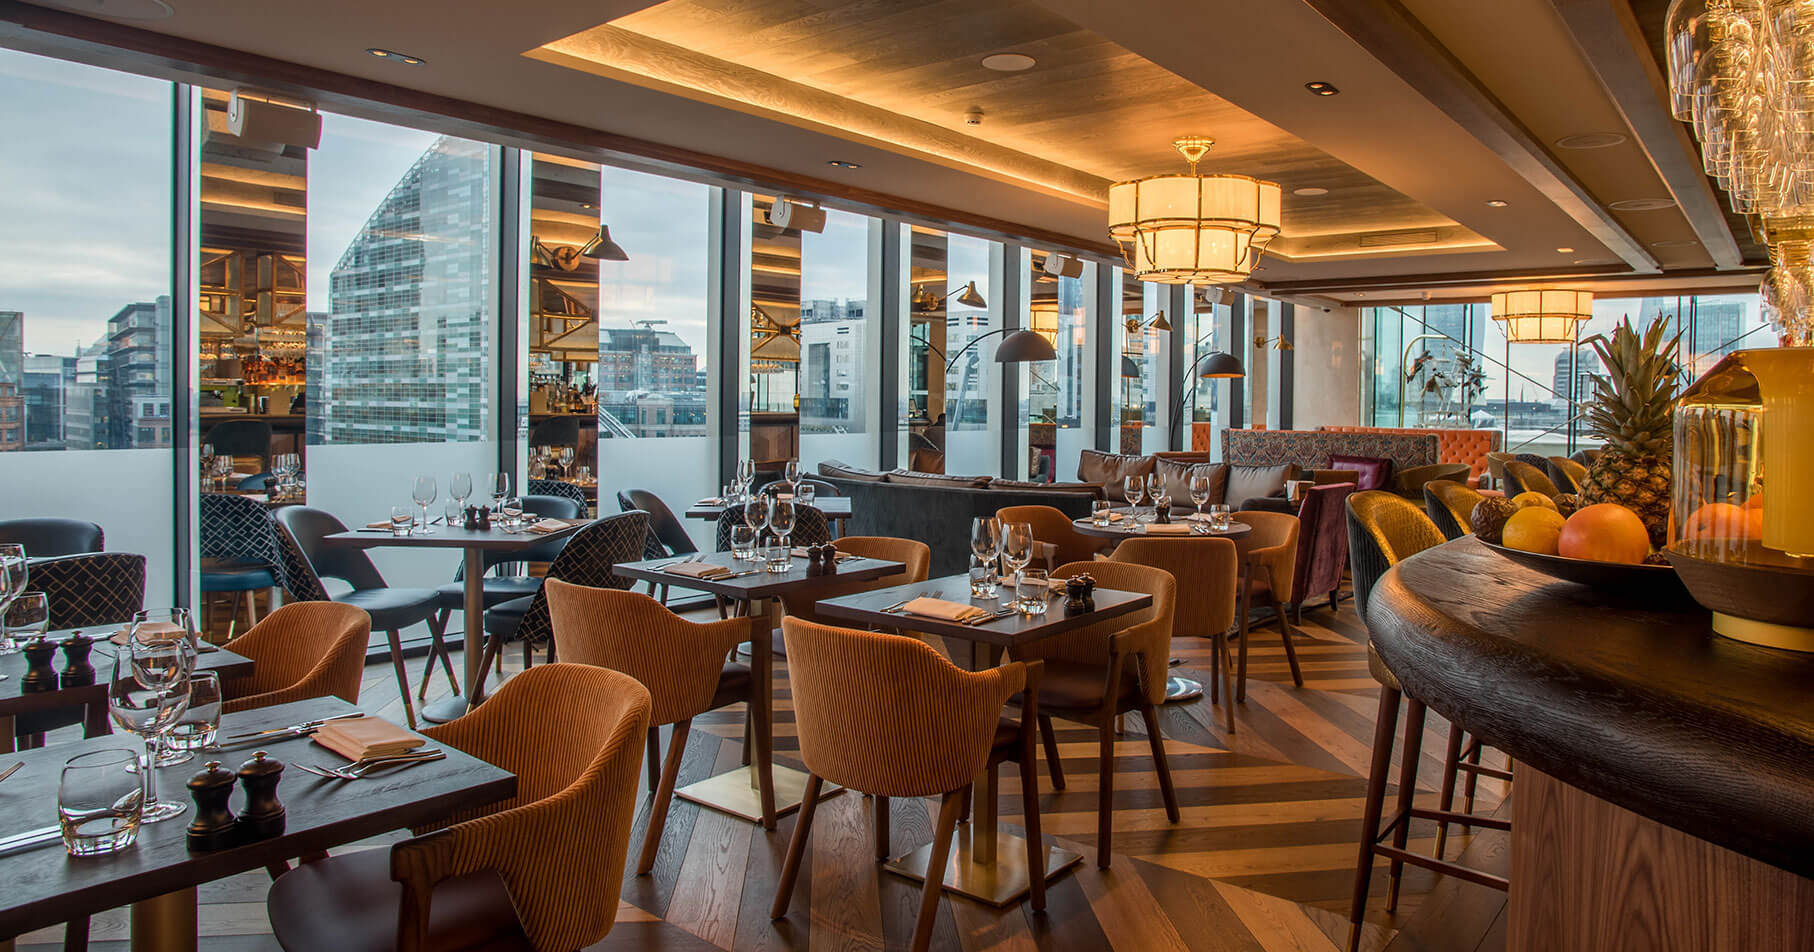 Restaurants And Bars In Finsbury Square London